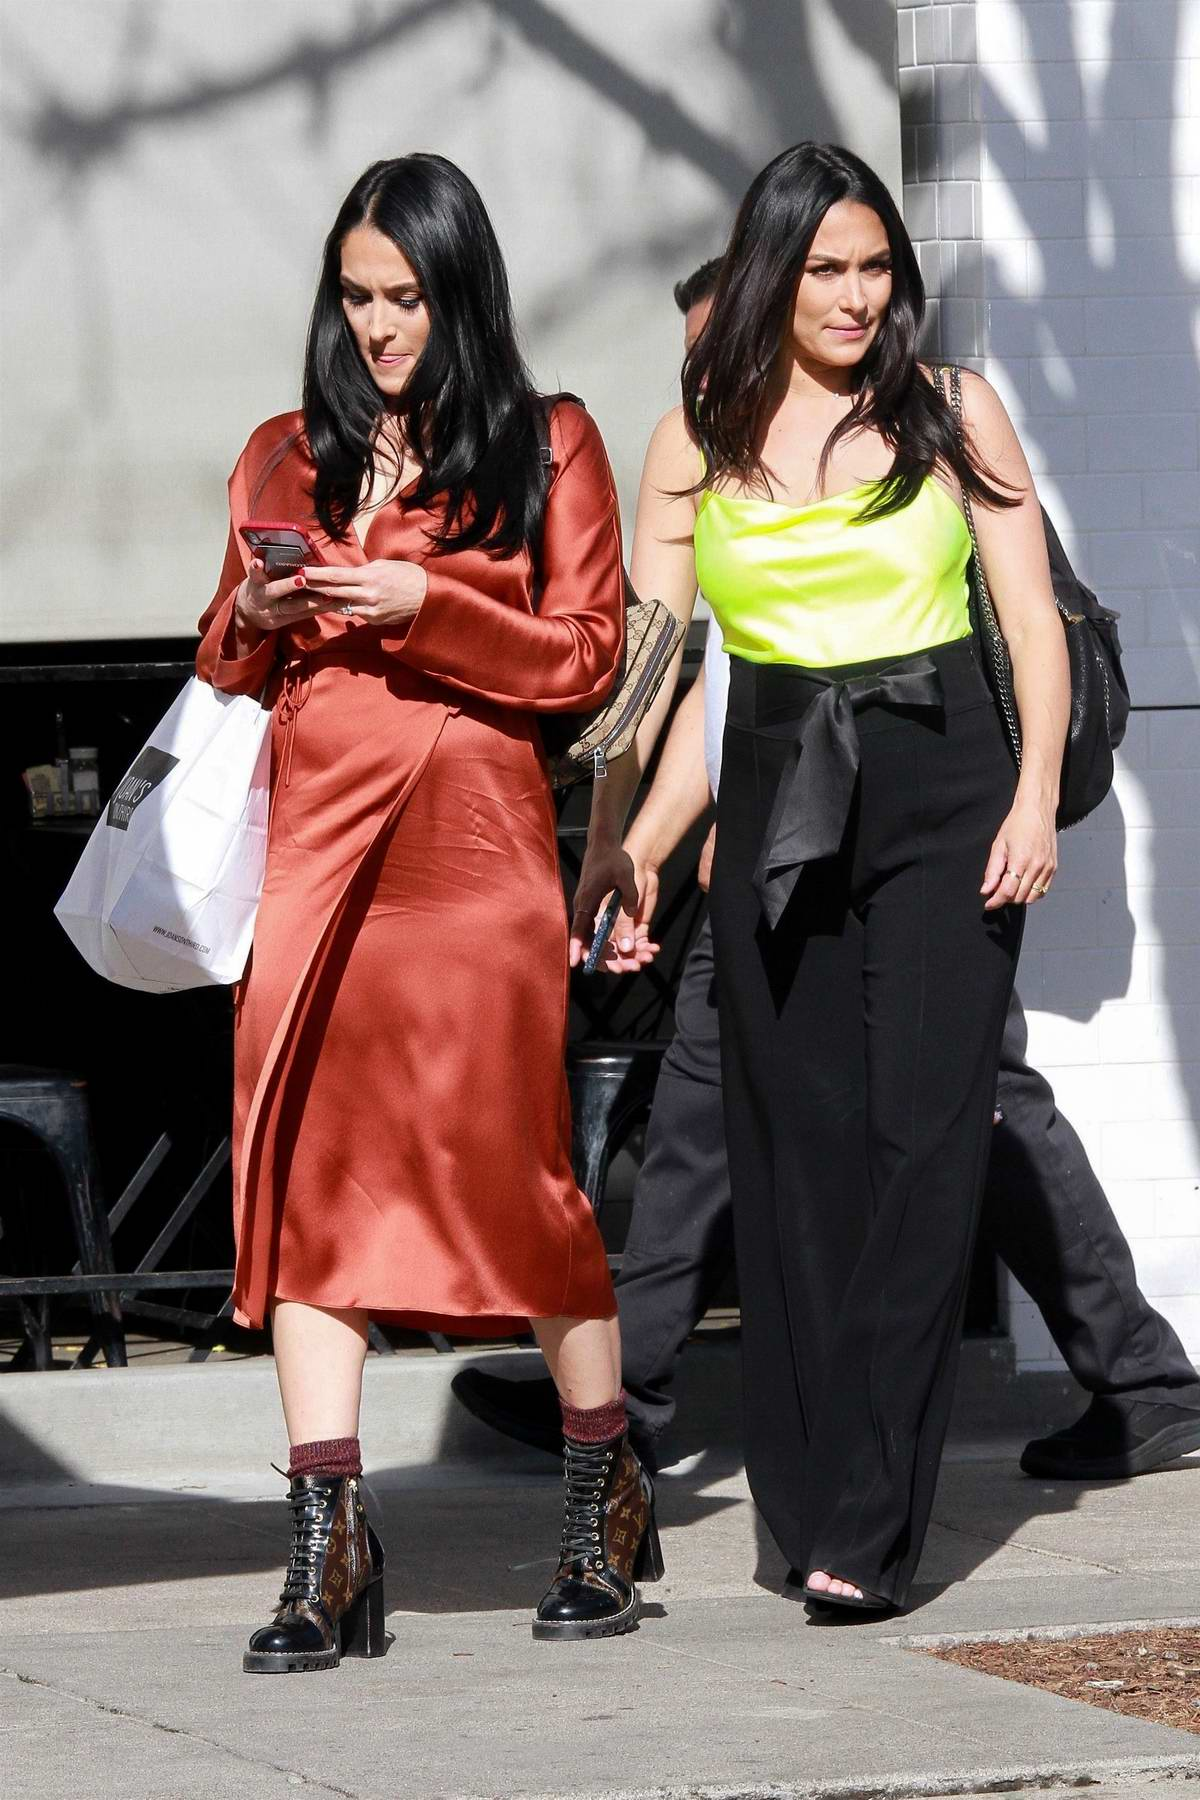 Nikki Bella and Brie Bella grab lunch at Joan's on Third before some shopping in Studio City, California